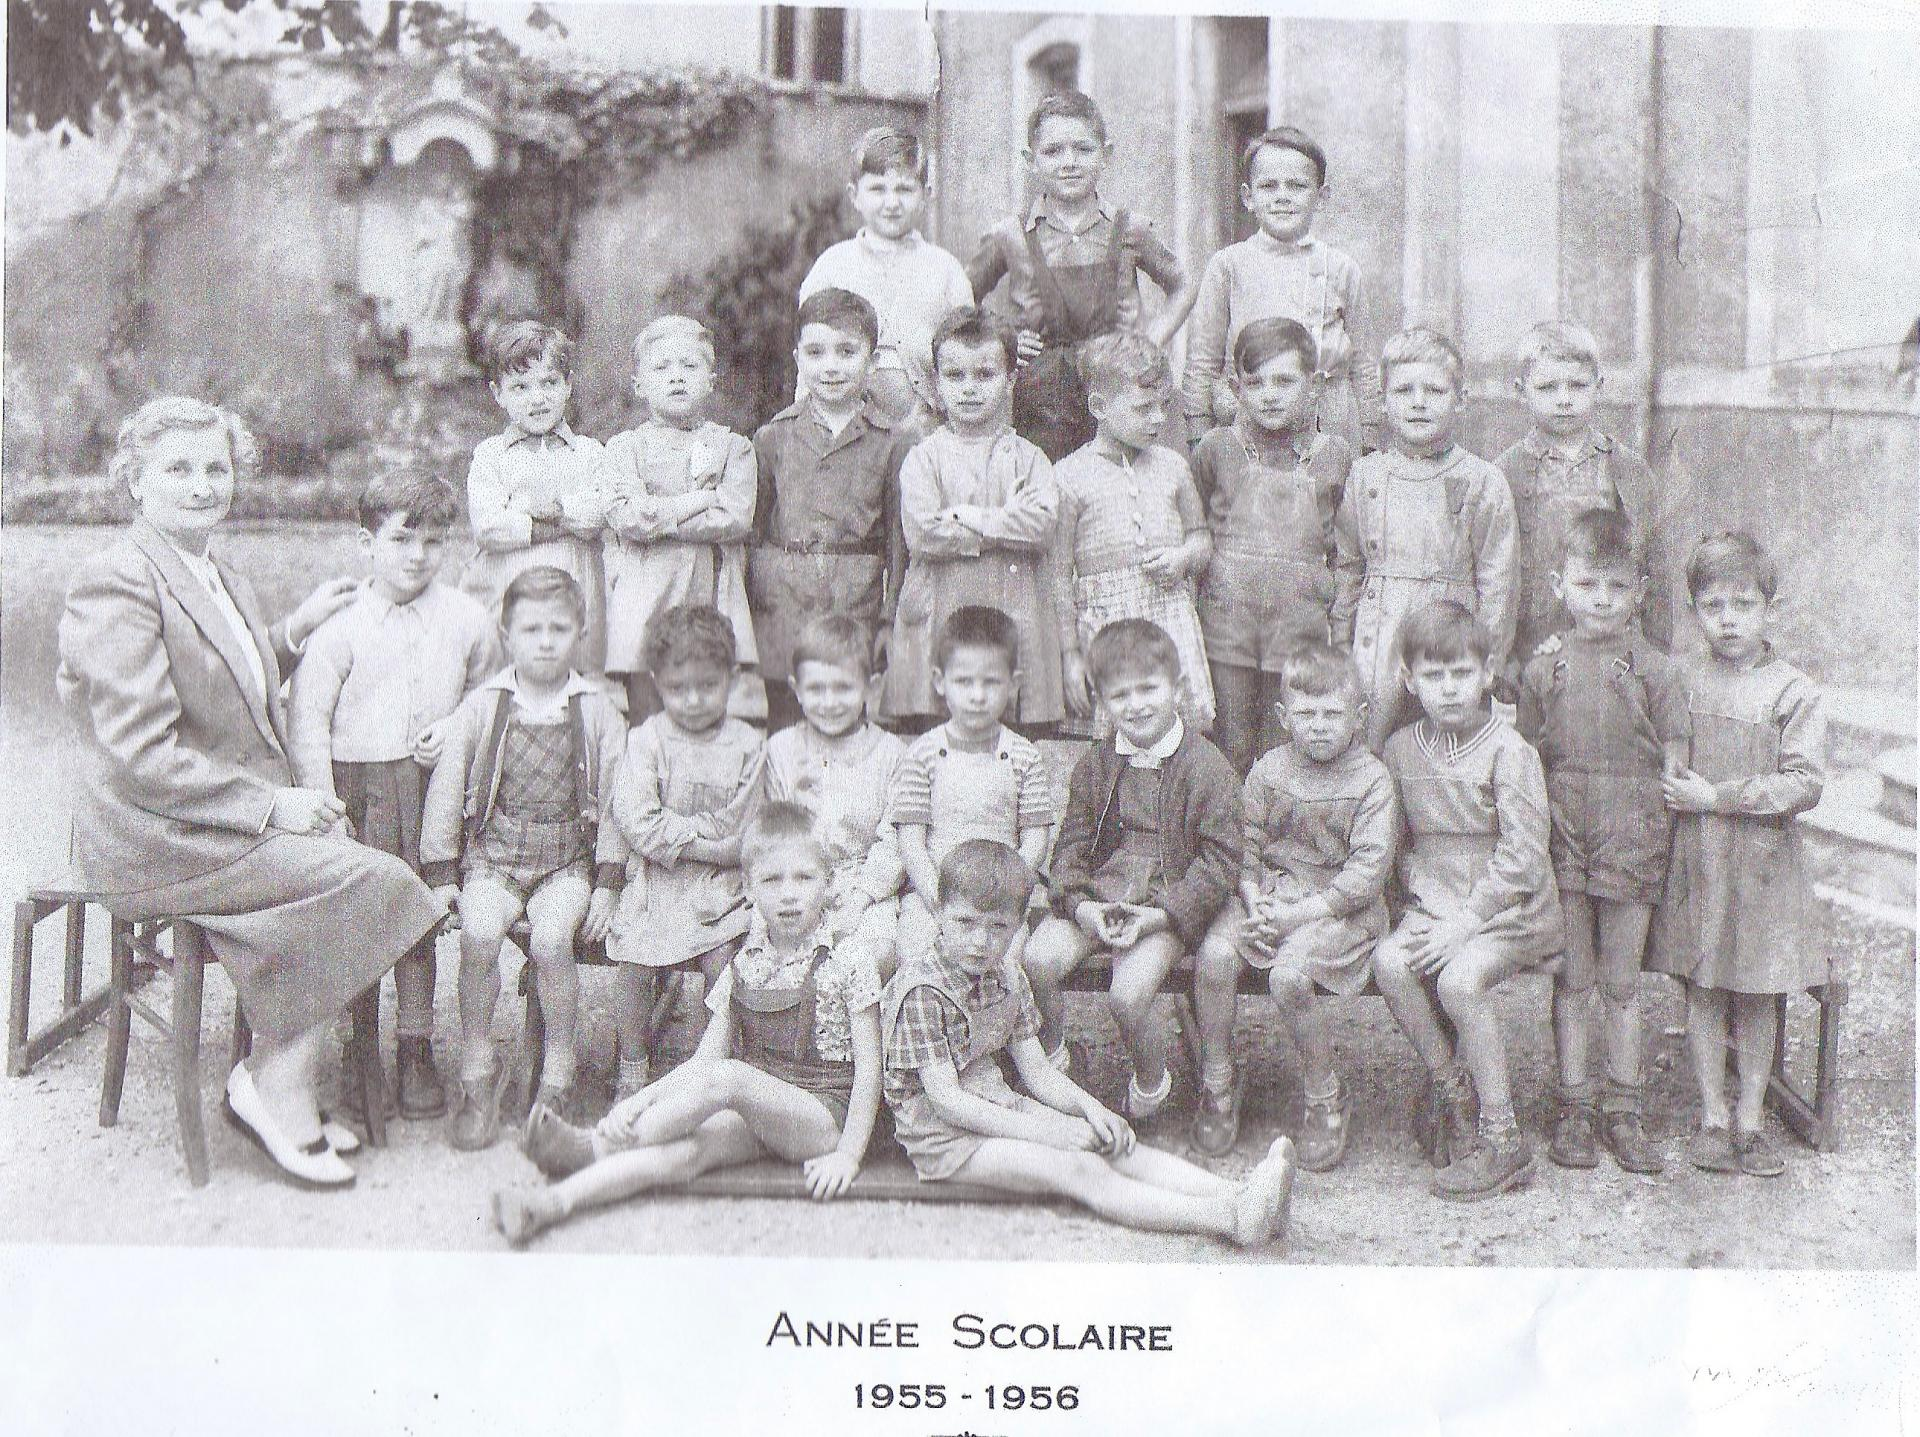 Annee scolaire 1955 1956